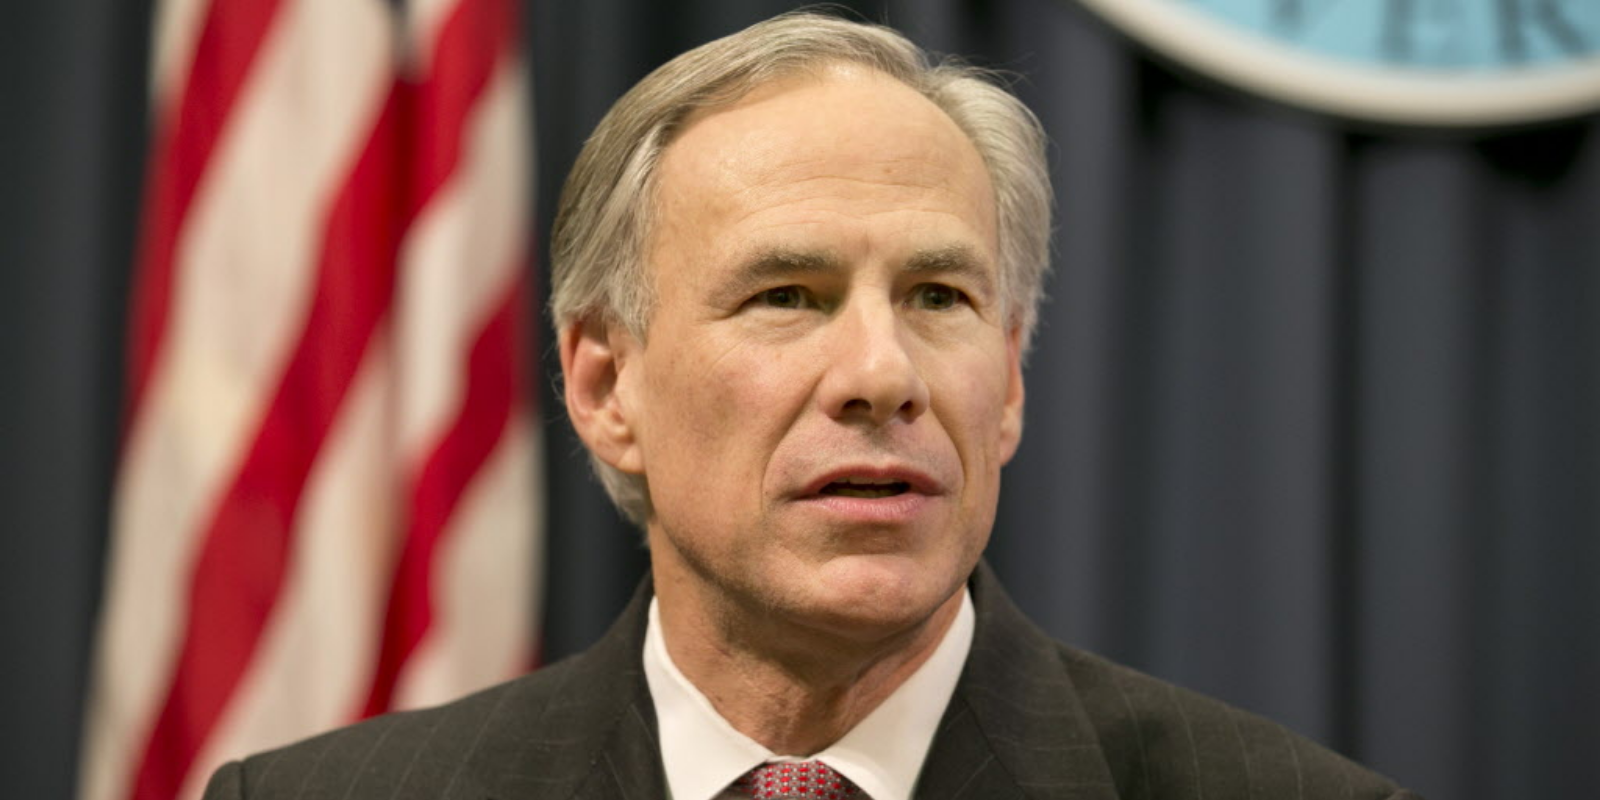 Texas passes bill that bans general health insurance coverage of abortions